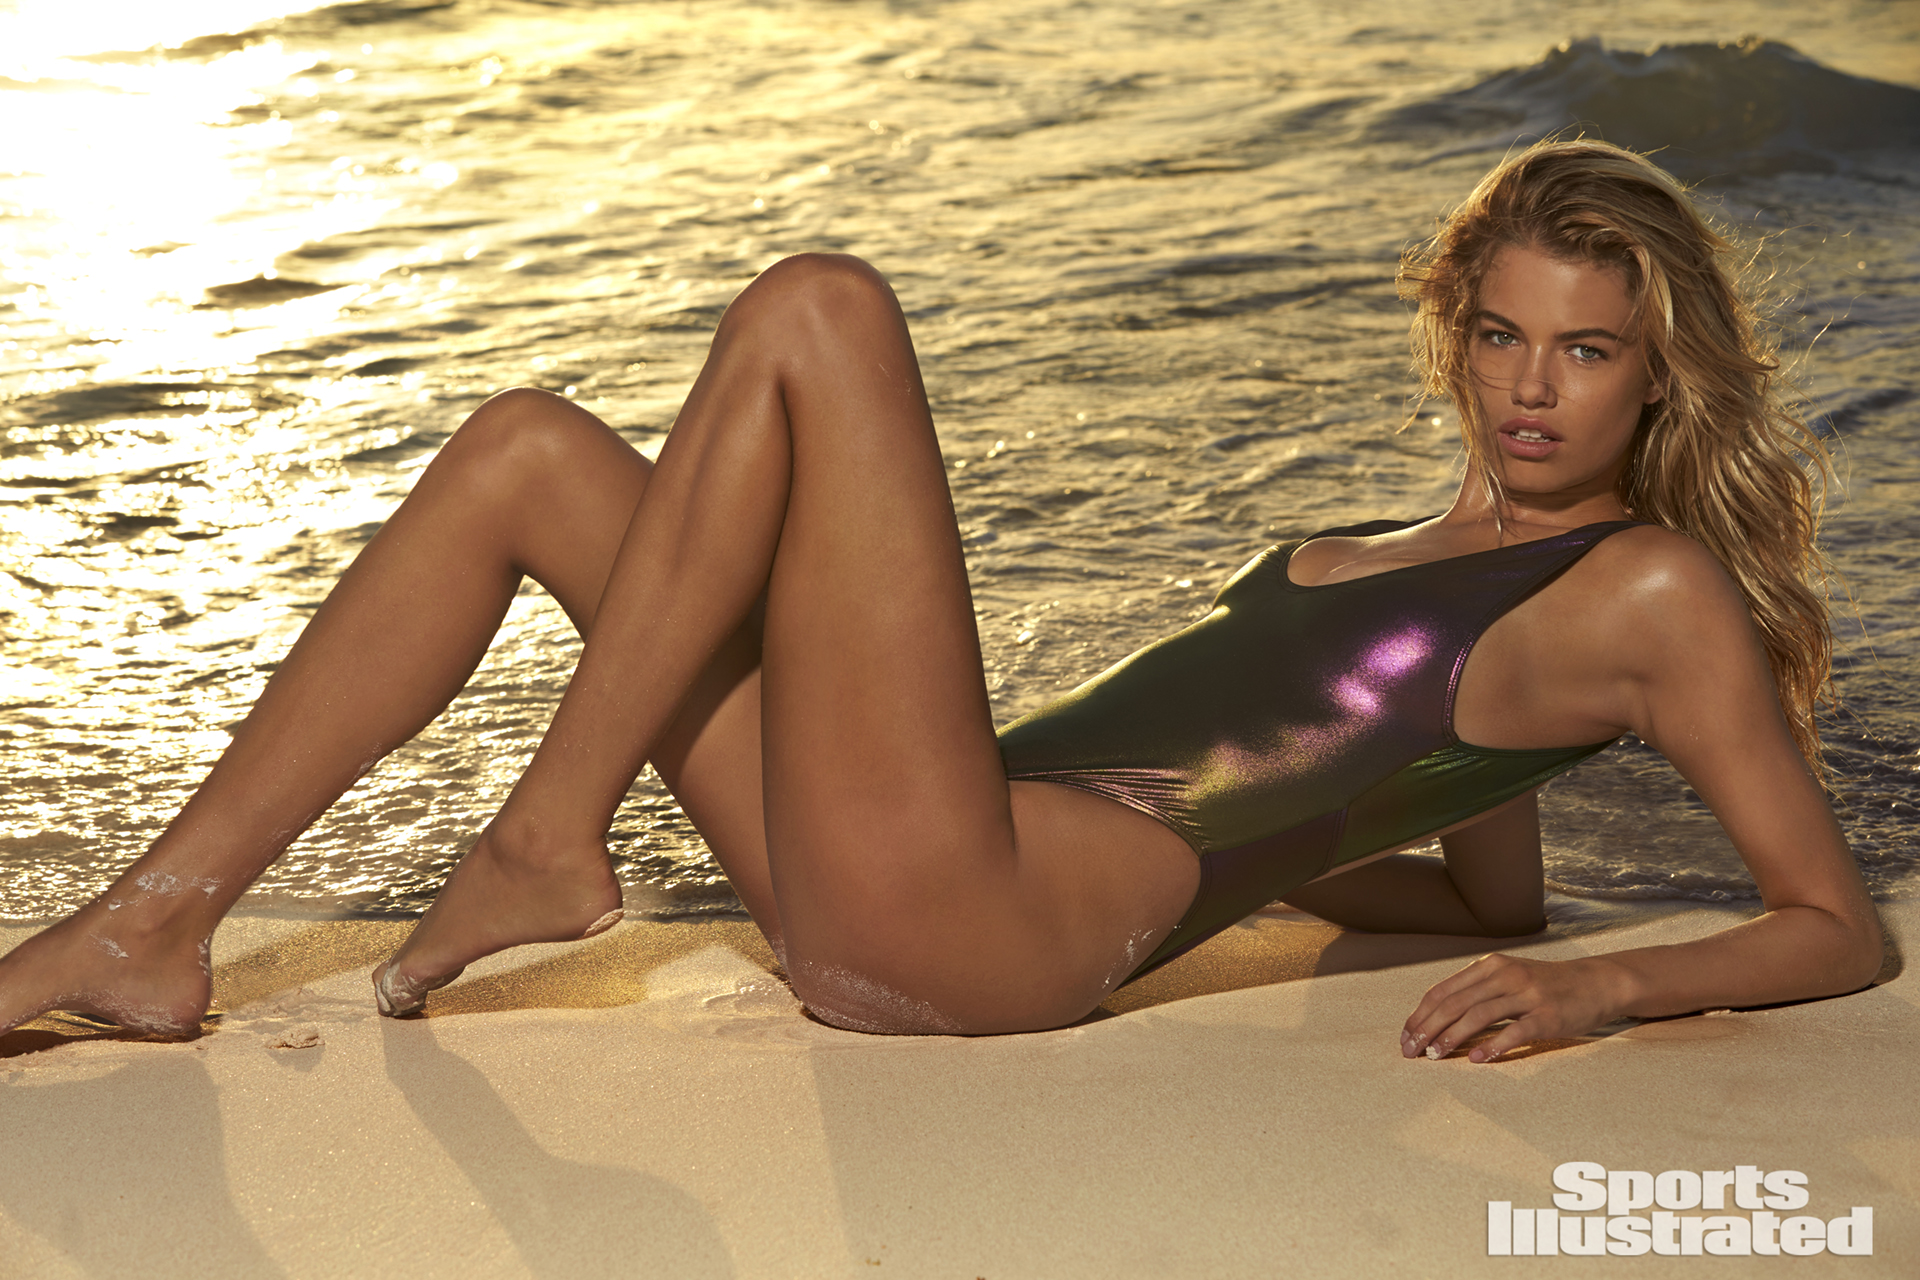 Hailey Clauson was photographed by Ben Watts in the Bahamas. Swimsuit by Sports Illustrated Swim